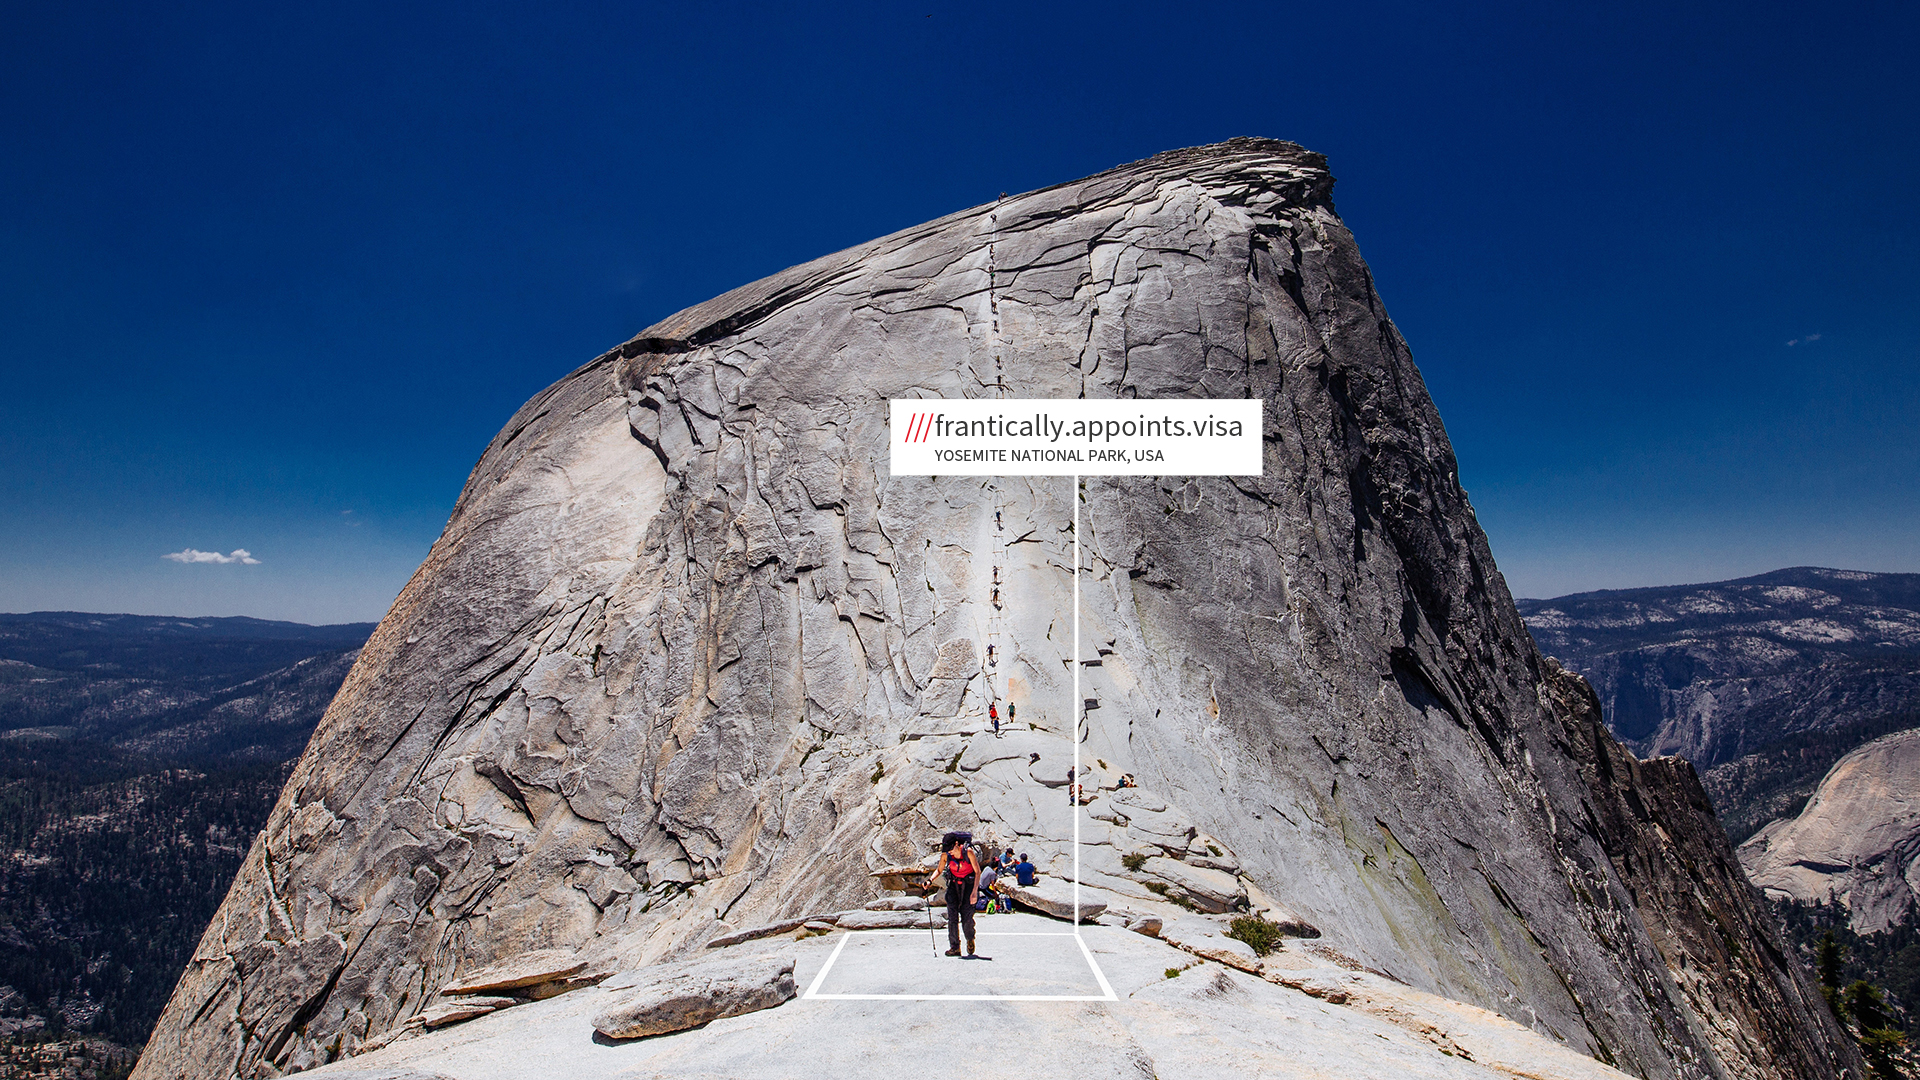 Yosemite National Park with what3words address